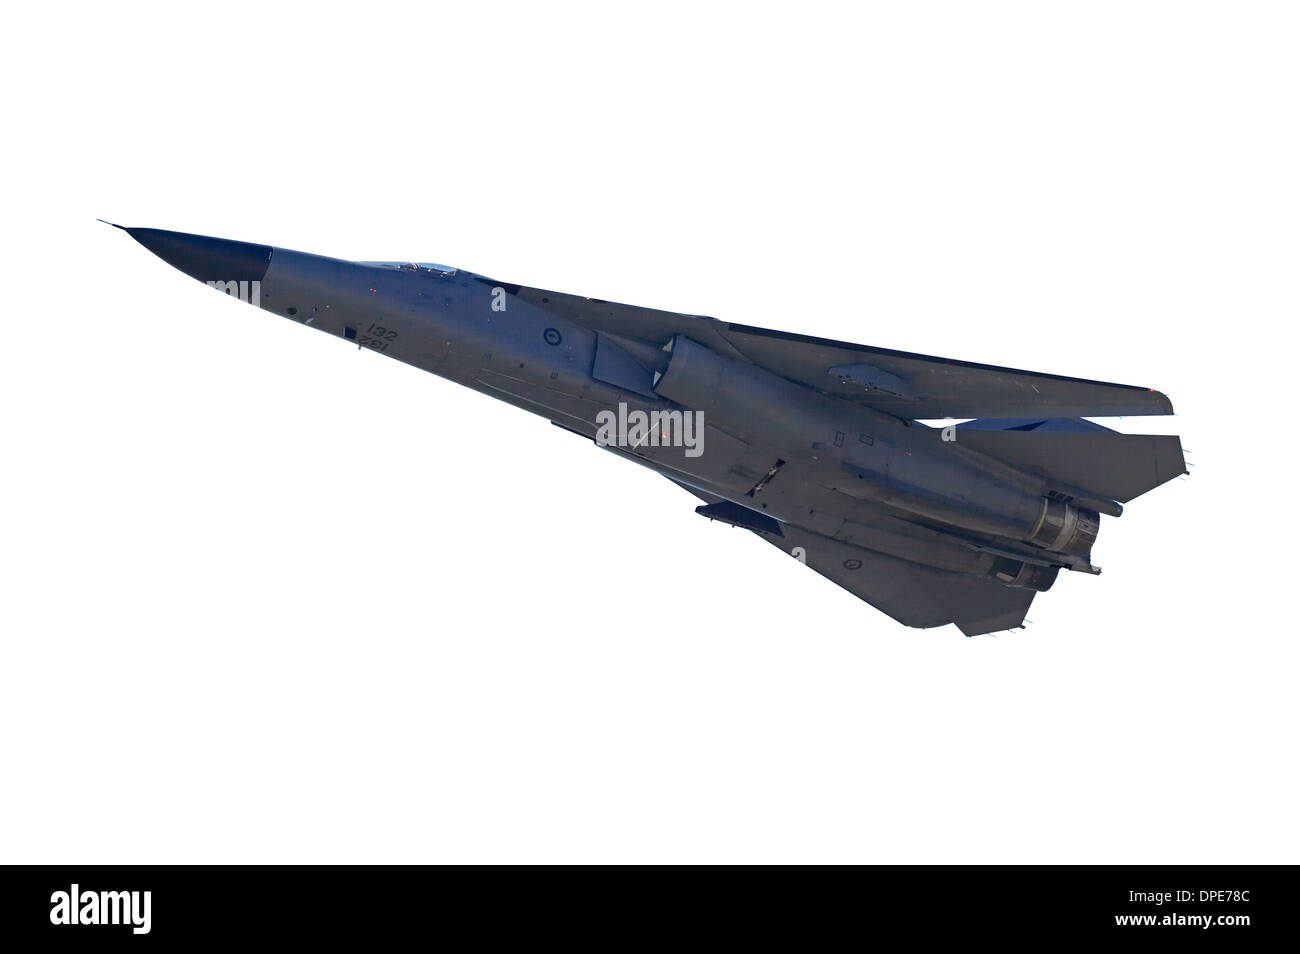 Spaccato del General Dynamics F-111 Swing Wing Jet Fighter (RAAF) Immagini Stock